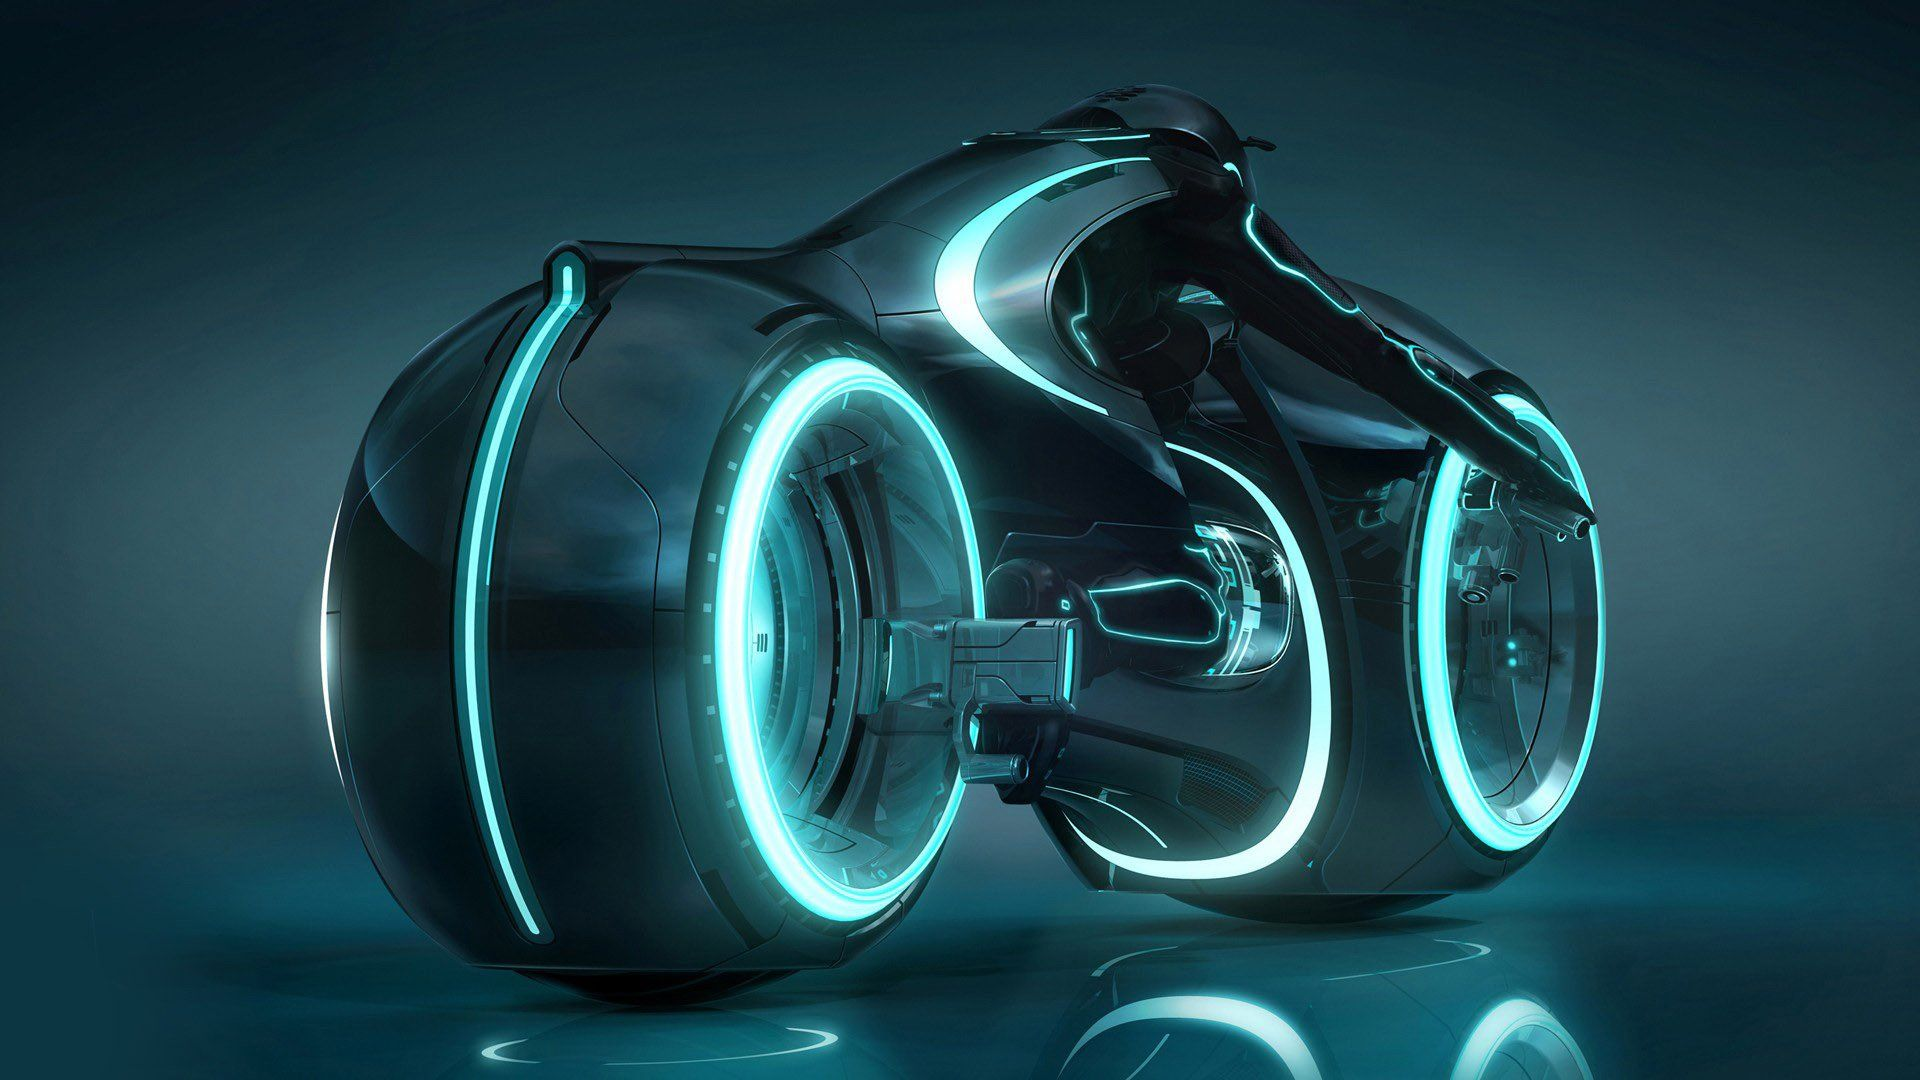 Wallpaper 3d Bike Tron Legacy Download: Tron Legacy Light Cycle By StupifY On DeviantArt 1920×1080